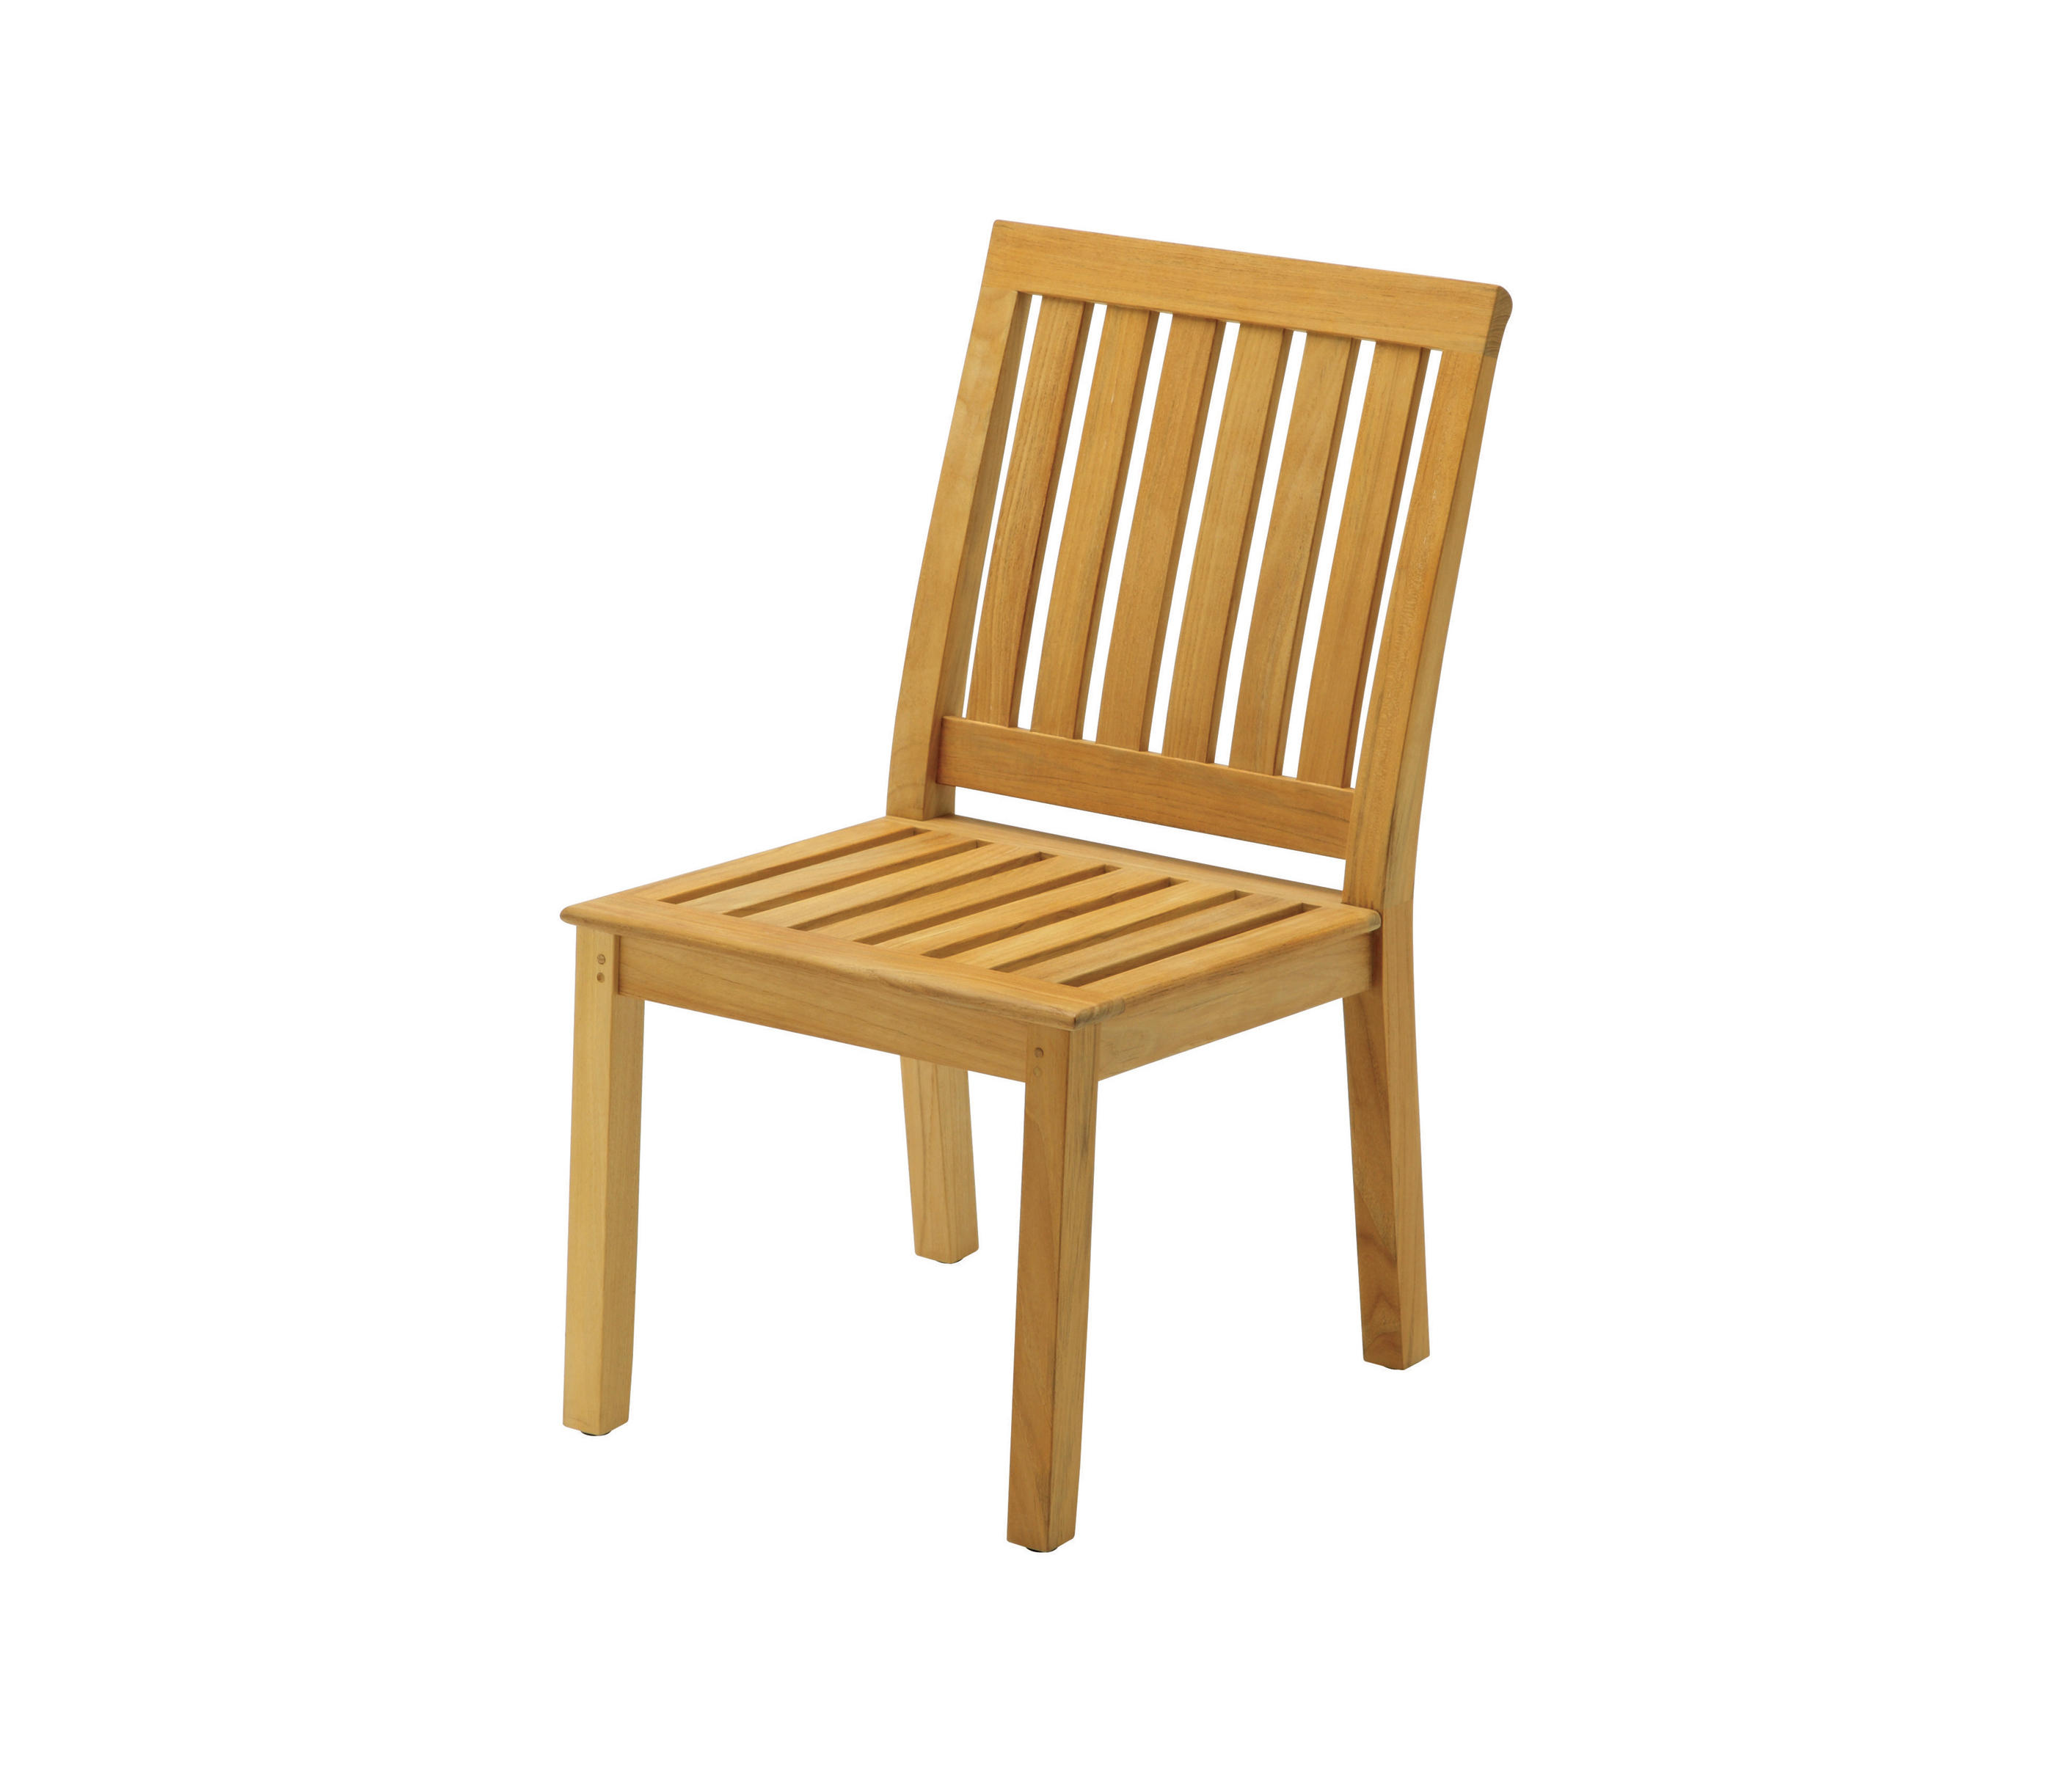 Cape dining chair garden chairs from gloster furniture